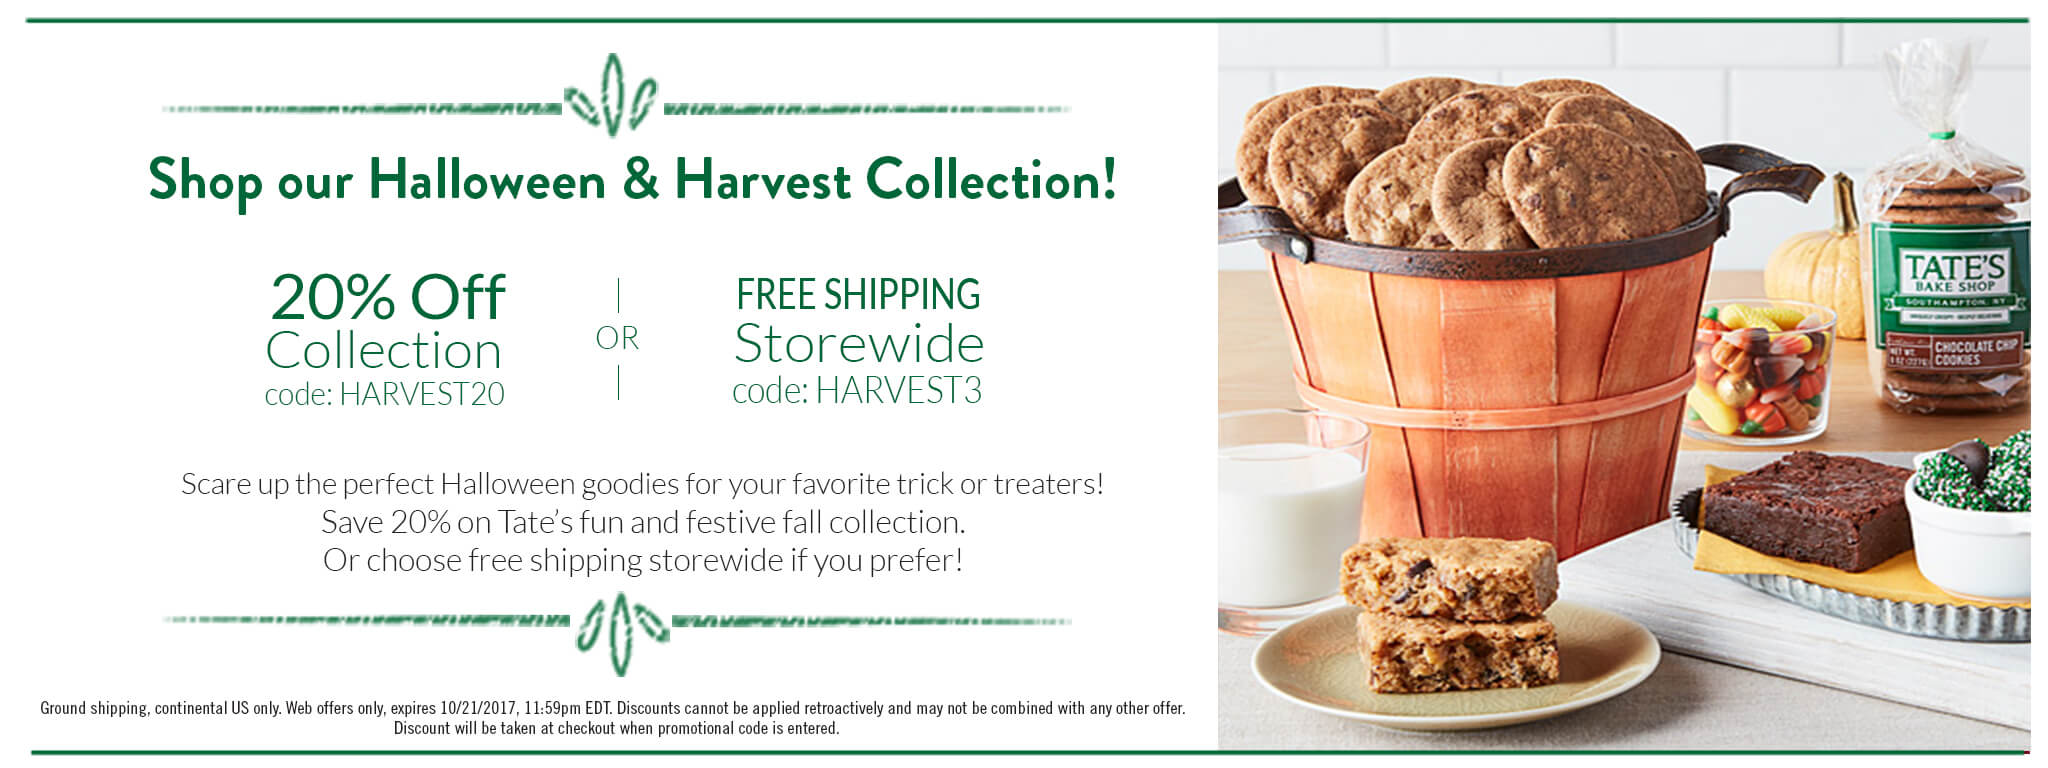 shop our halloween & harvest collection and save 20%!